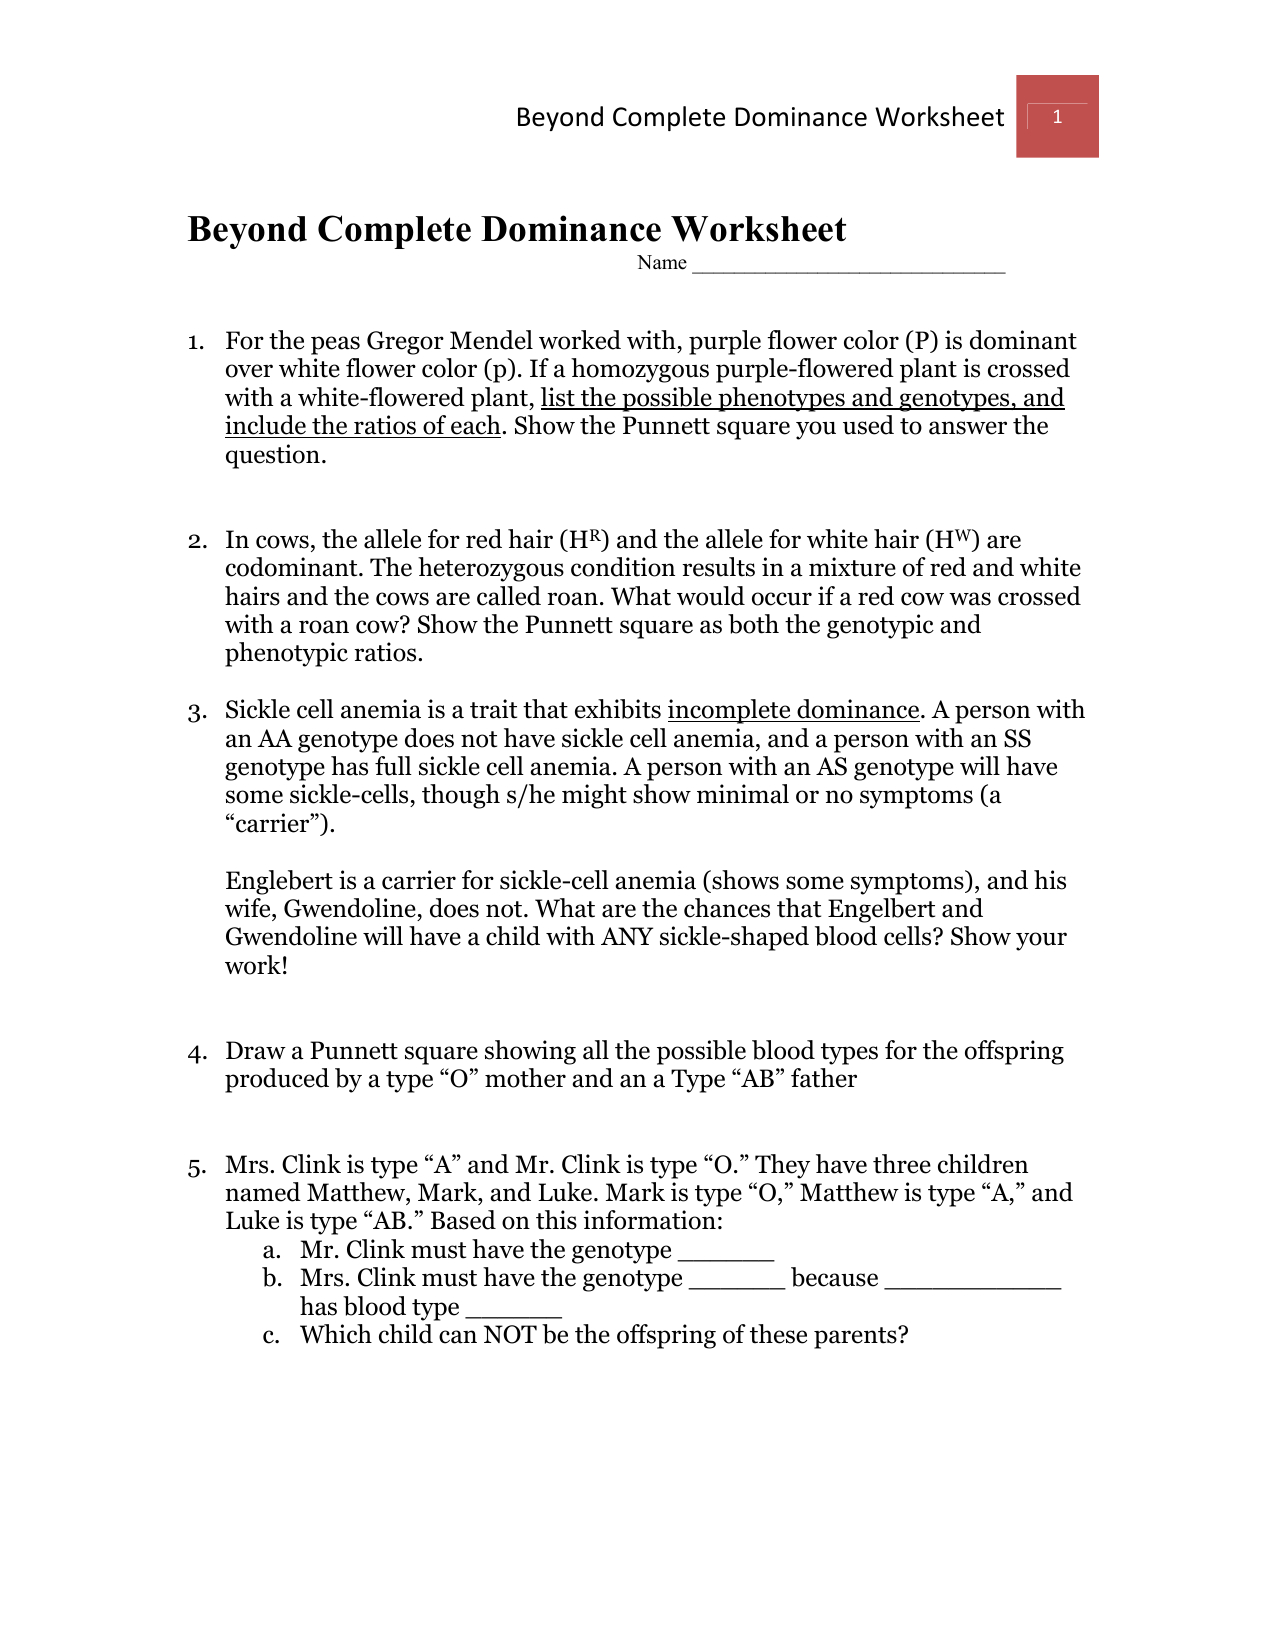 Beyond Complete Dominance Worksheet